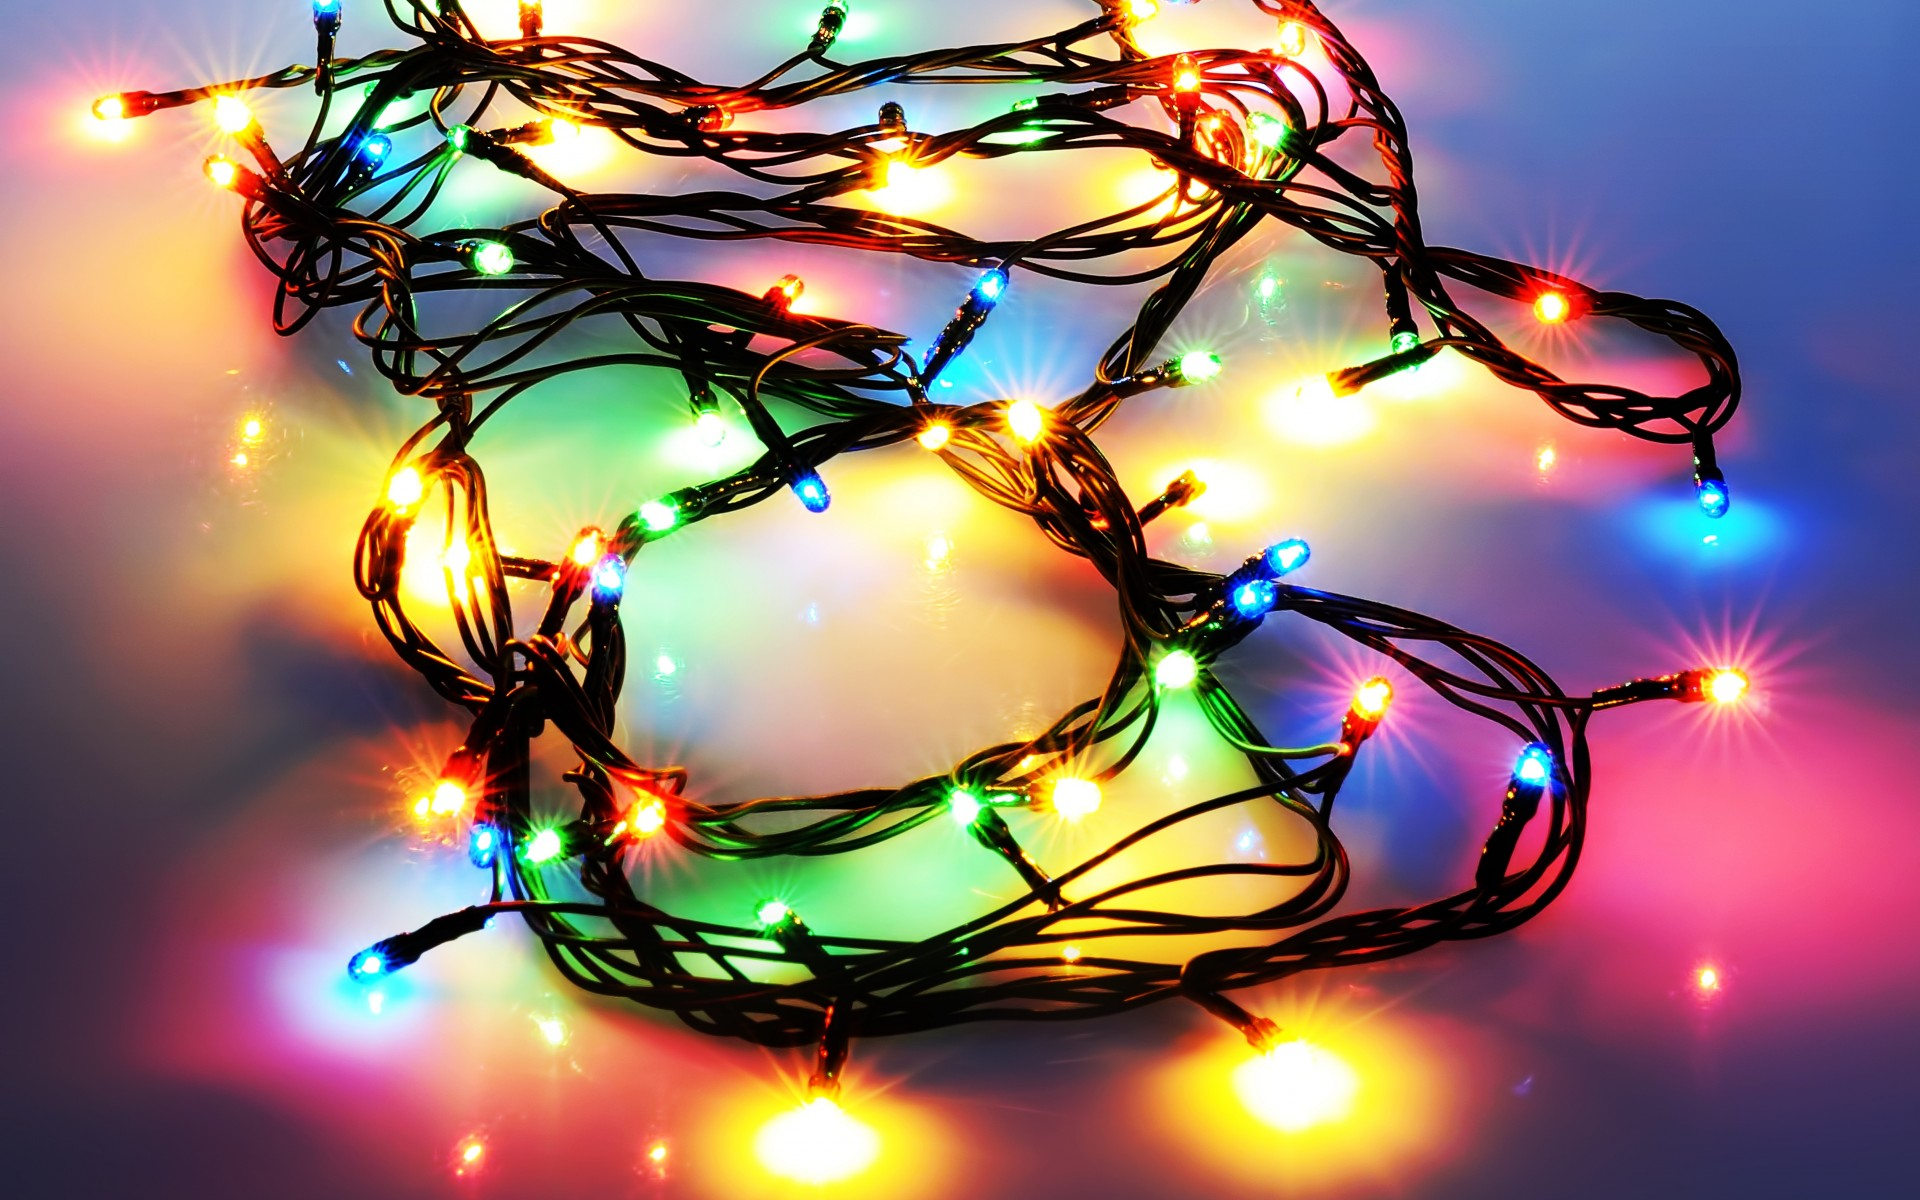 download holiday lights wallpaper 44575 1920x1200 px high definition